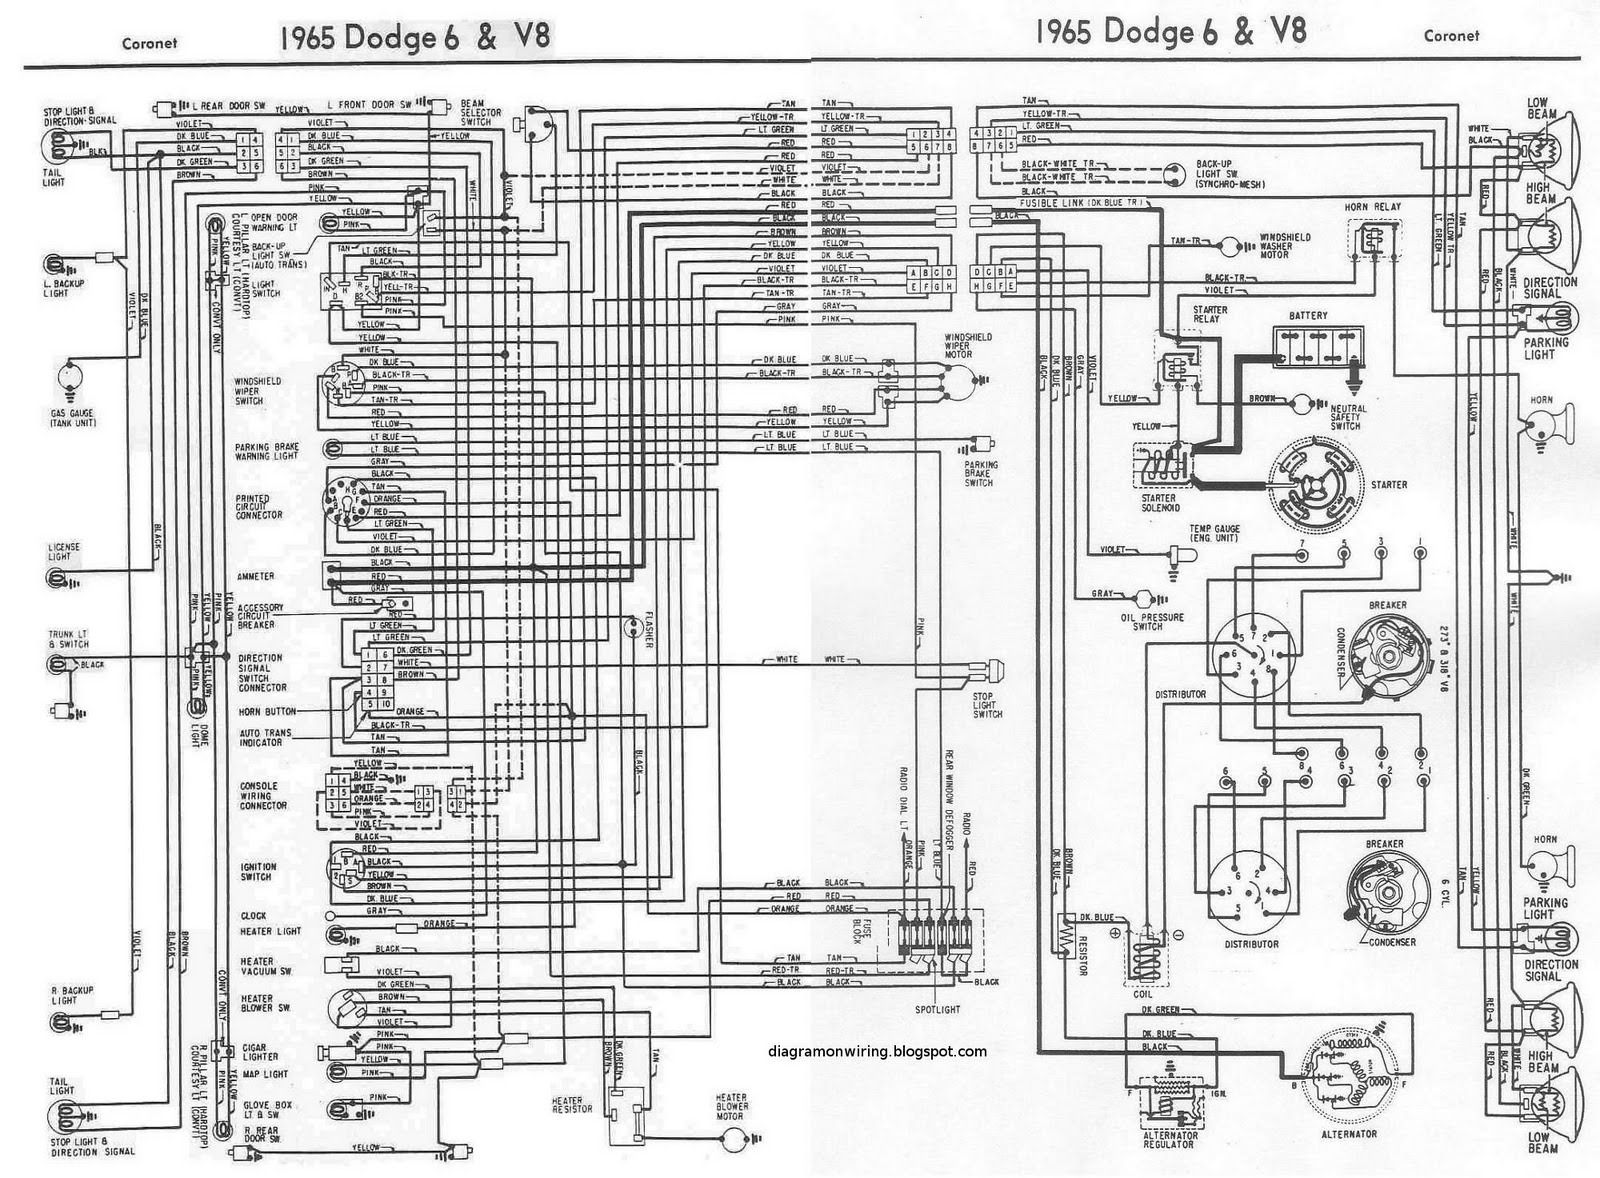 1964 Chrysler 300 Wiring Diagram